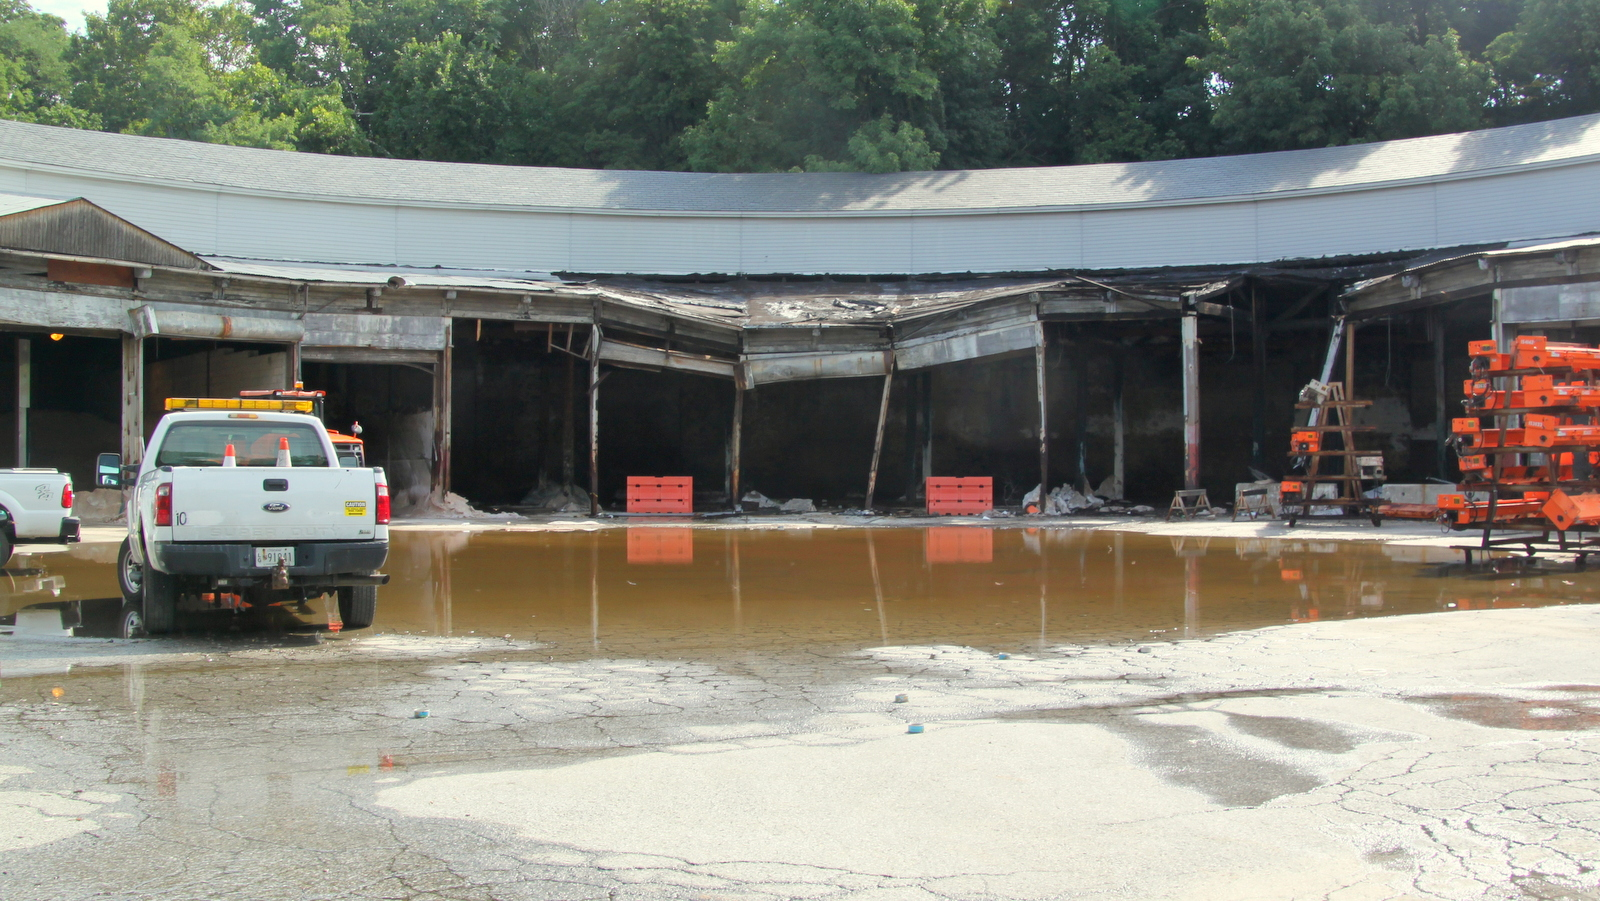 The old railroad roundhouse, used by the city to store salt, had a lake in the parking lot Sunday morning. (Fern Shen)